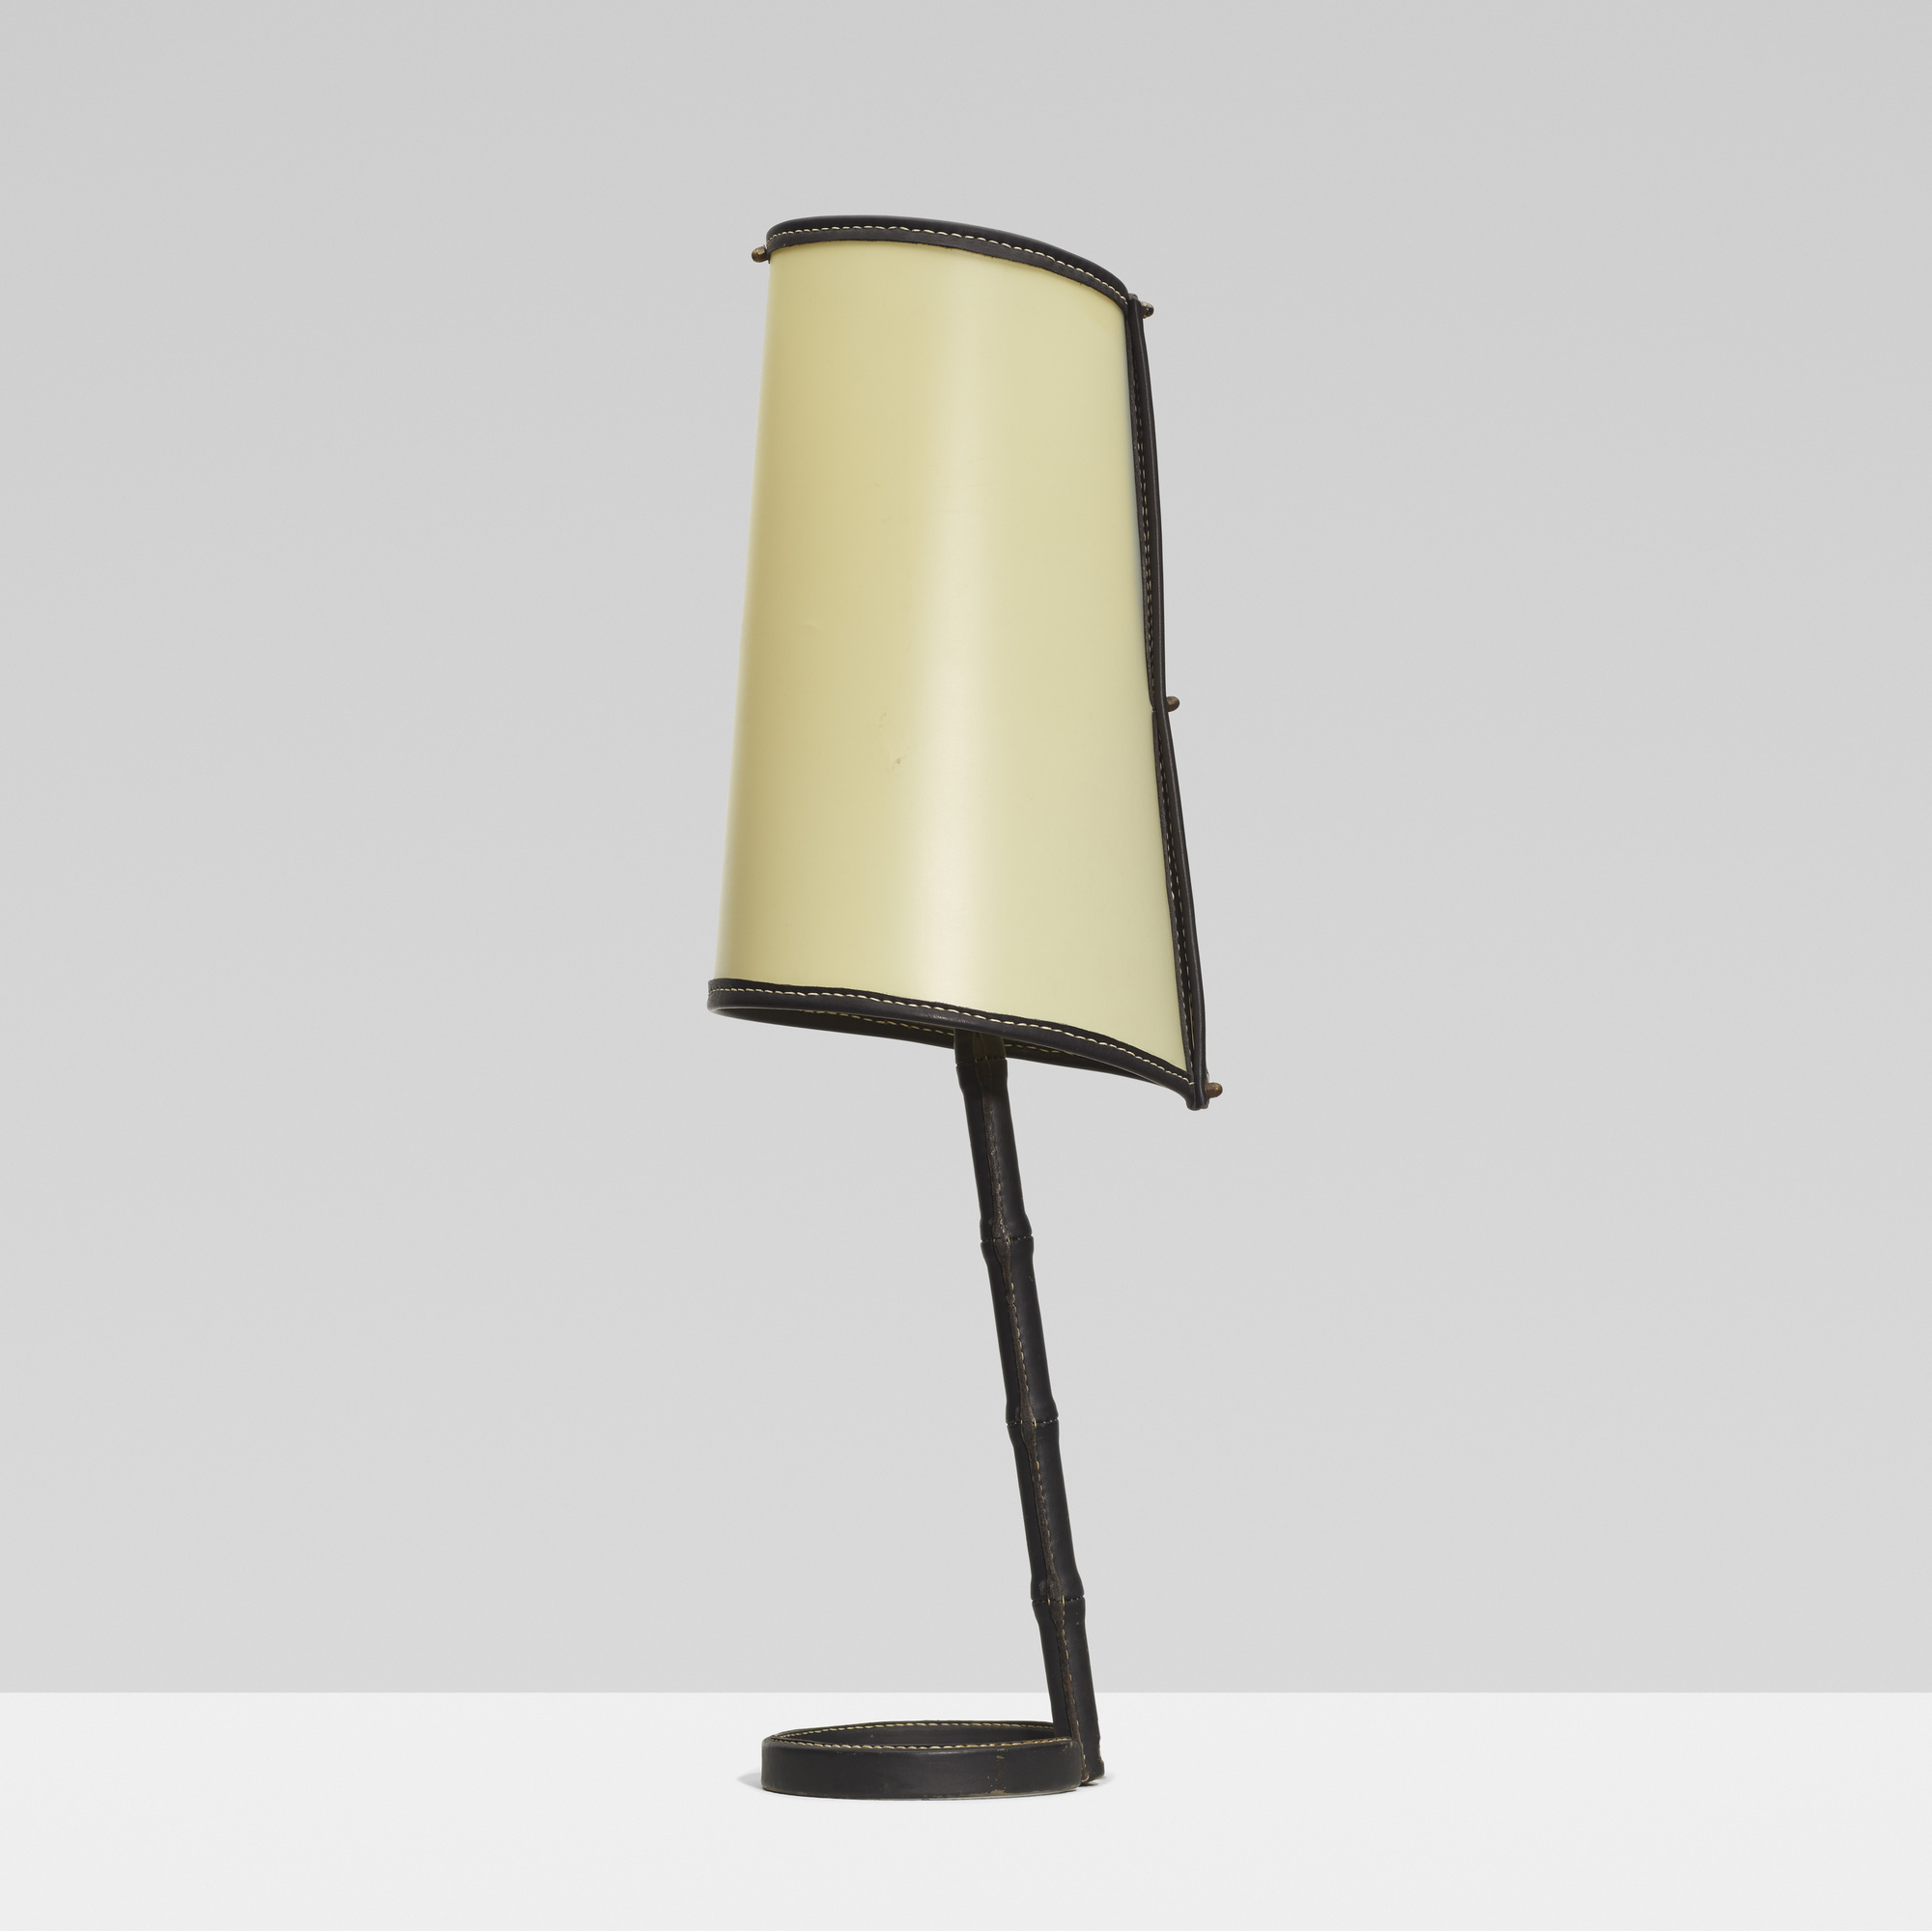 401: Jacques Adnet / table lamp (1 of 2)